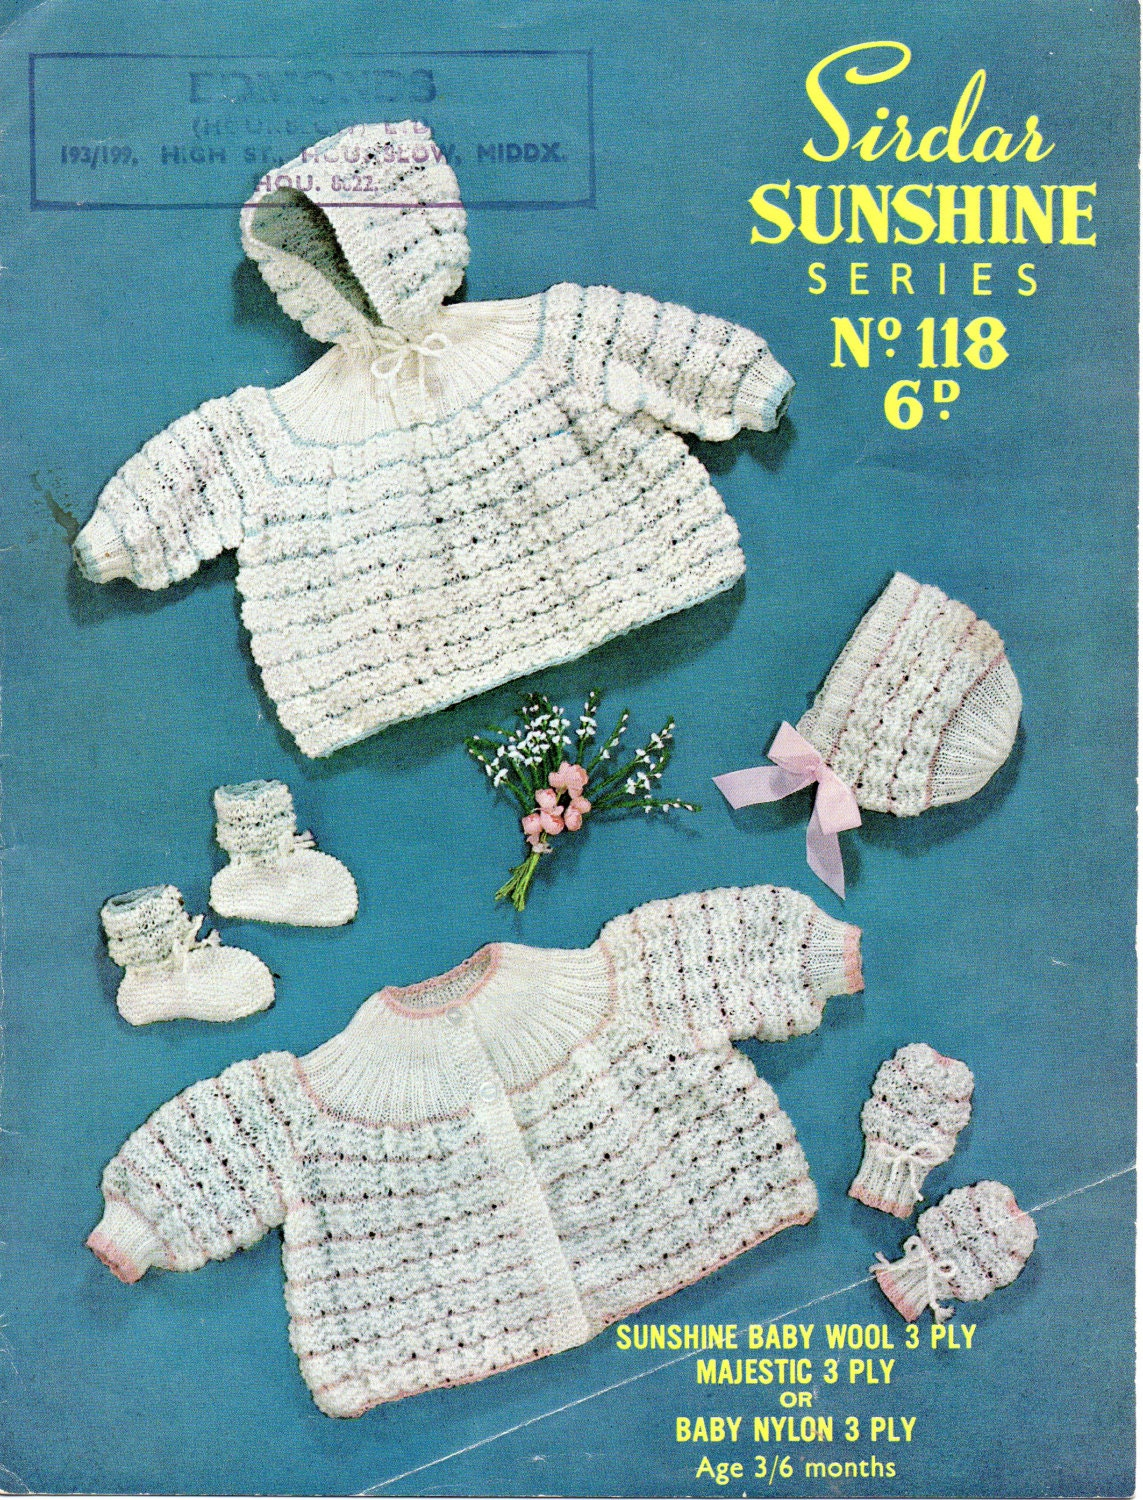 44dec6fcc Sirdar Sunshine Series Vintage Baby Knitting Patterns 3 and 4